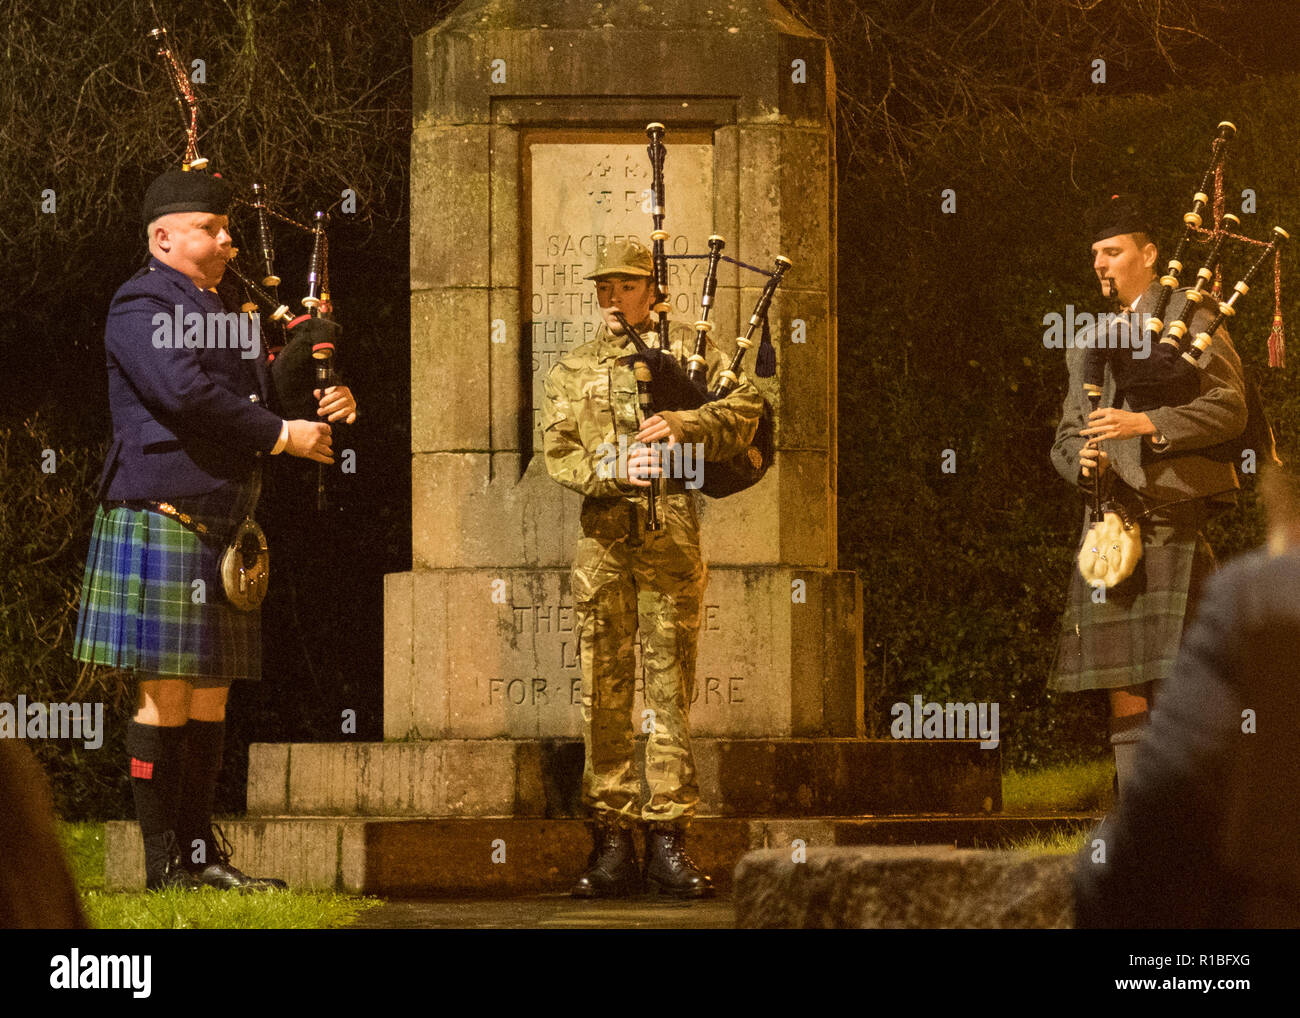 Strathblane, Stirlingshire, Scotland, UK. 11th Nov, 2018. Battle's Over - A Nation's Tribute. In the 6am darkness, pipers at the War Memorial in Blanefield/Strathblane join over 1000 pipers across the world to play 'The Battle's O'er'. The Battle's O'er, a traditional Scottish lament played at the end of battle commences the day's commemorations marking the Centenary of the end of the First World War Credit: Kay Roxby/Alamy Live News - Stock Image